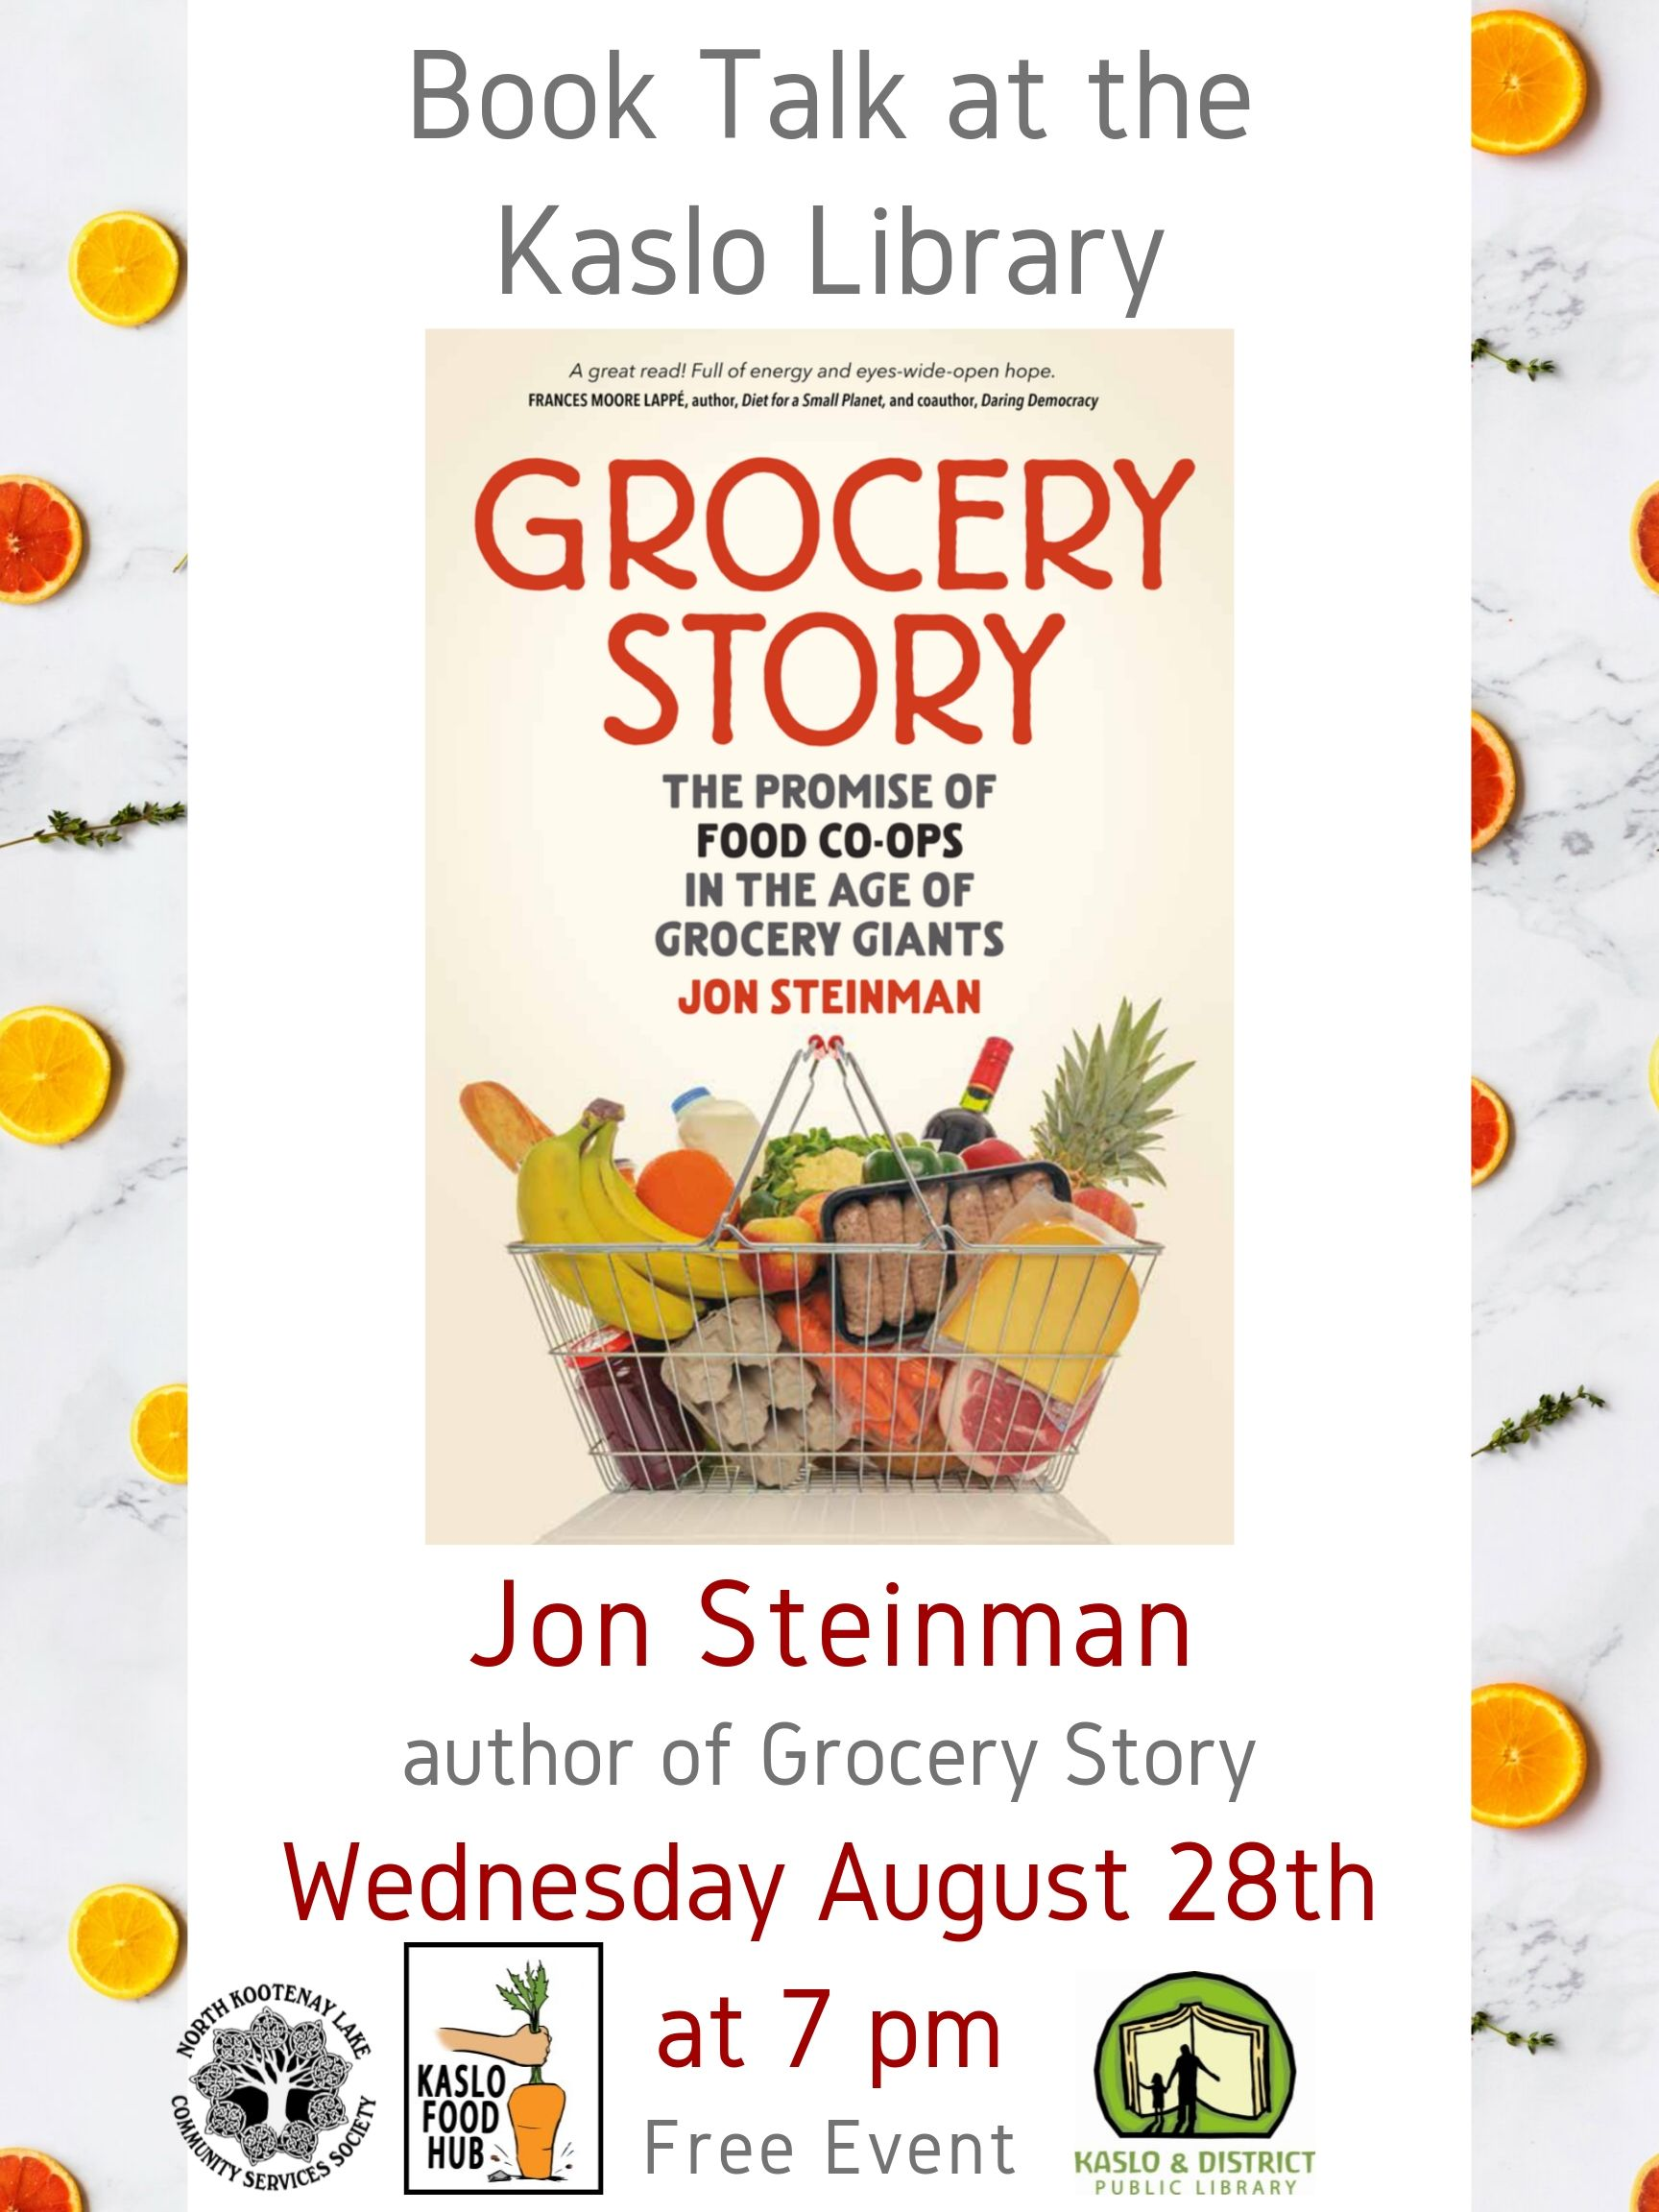 poster for Jon Steinman Book Talk